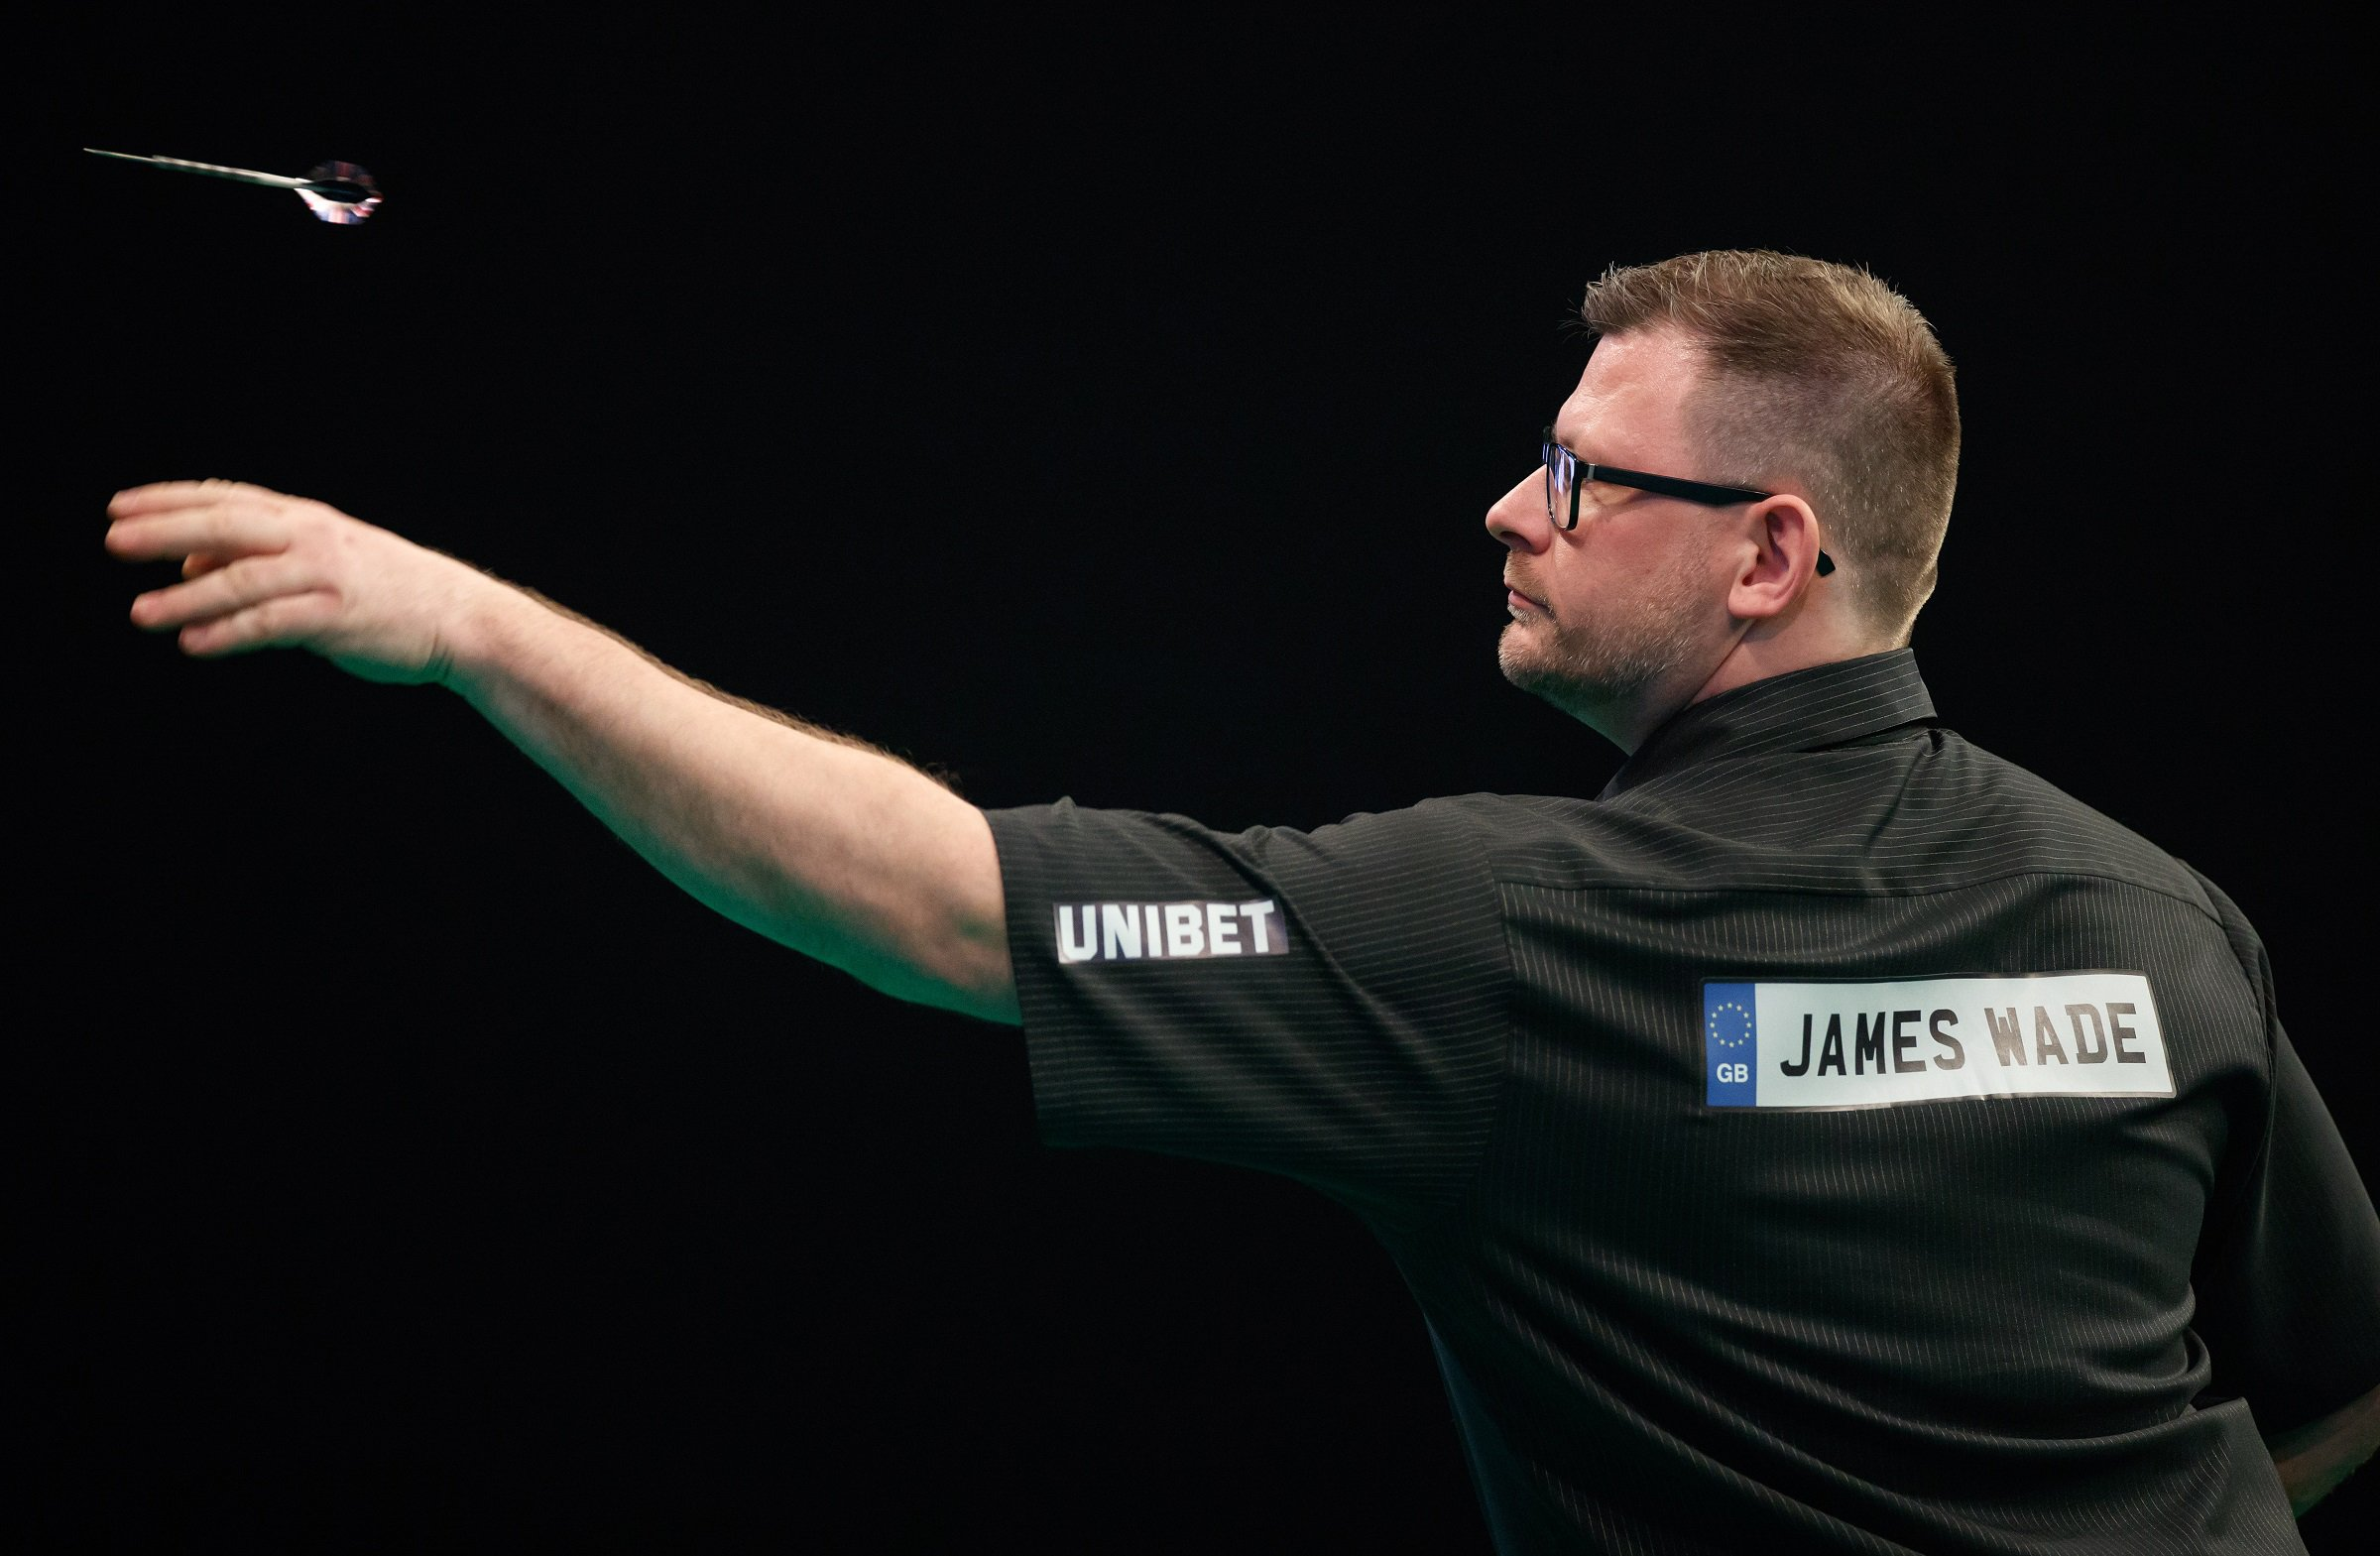 Watch James Wade hit 9-darter but still lose German Darts Championship match